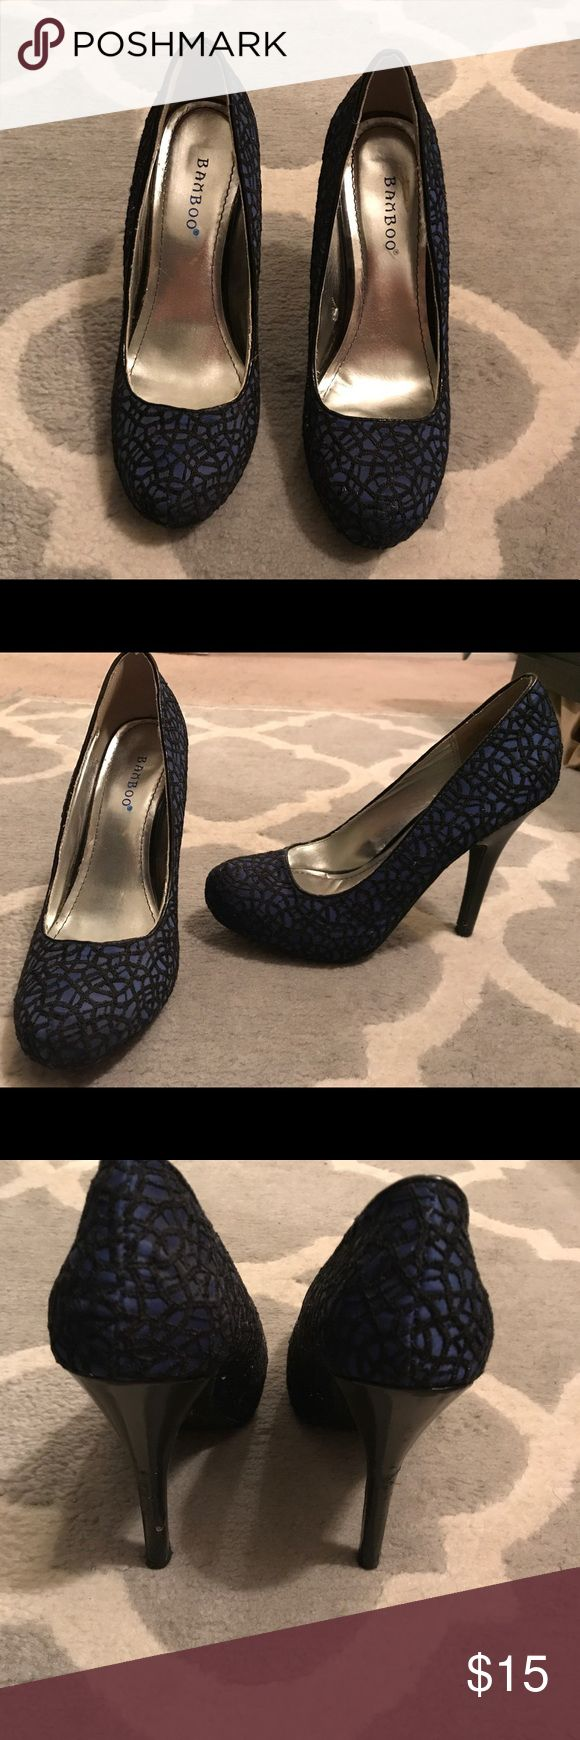 Womens' size 7.5 bamboo navy/black pumps Bamboo brand, size 7.5 navy satin with black embroidery detail in a lace pattern. Lightly worn. A few little knicks in the heel as shown in picture. Make me an offer  BAMBOO Shoes Heels